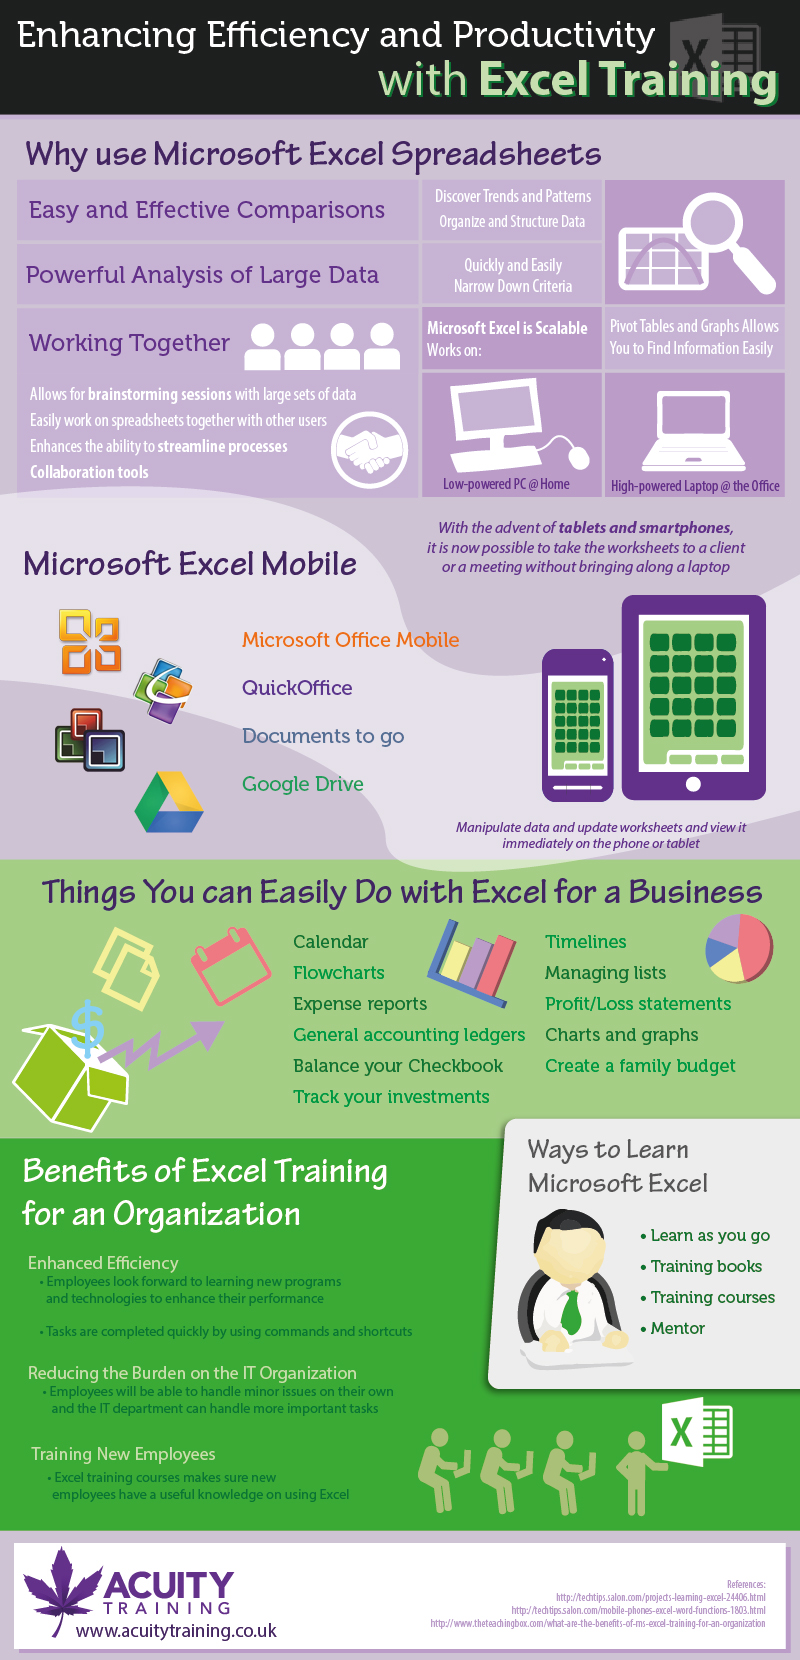 excel training infographic acuity training